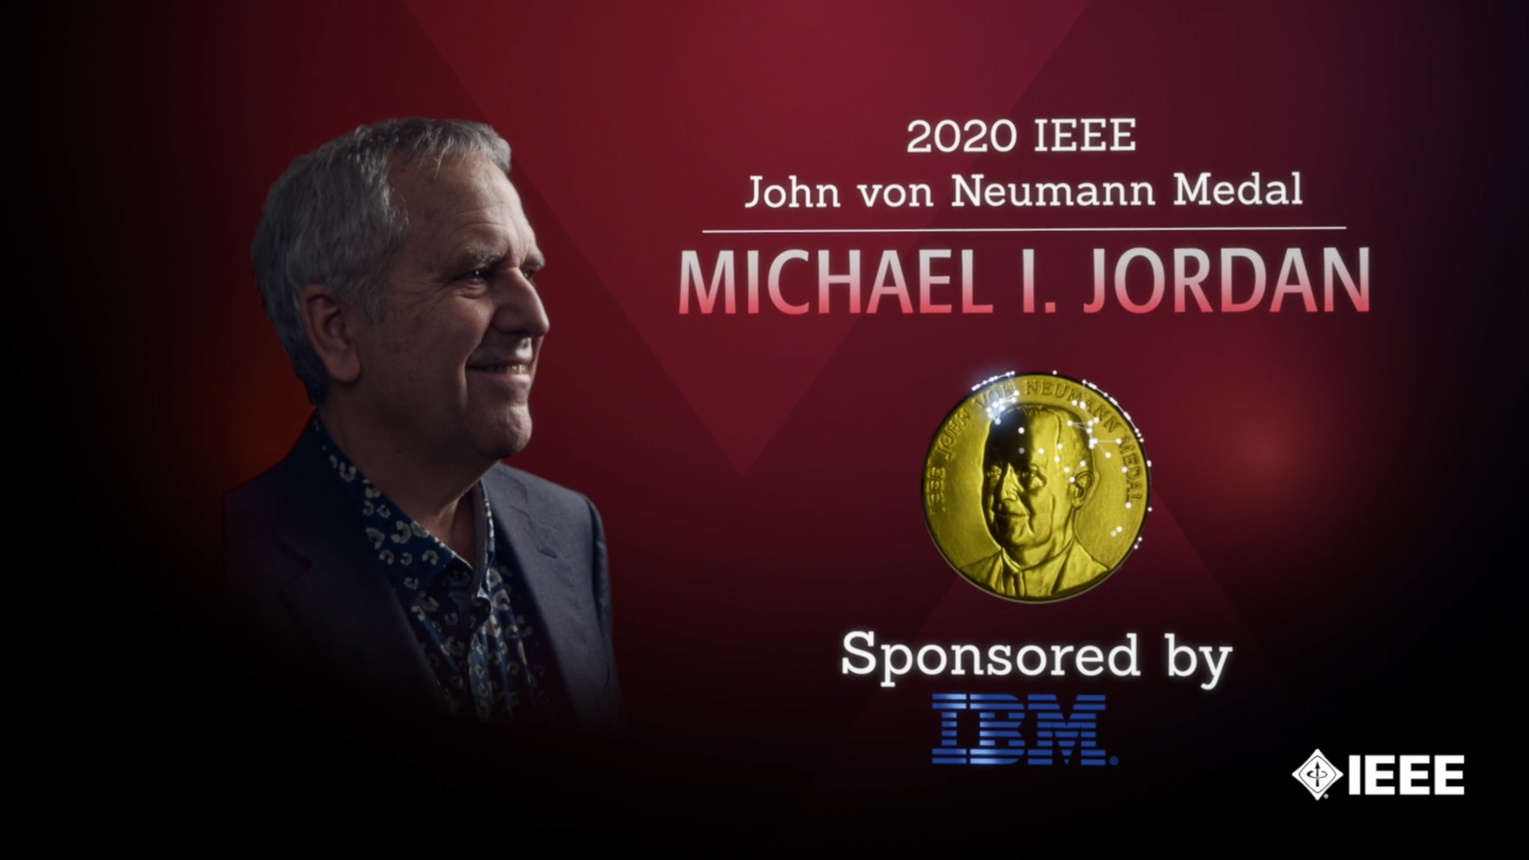 Honors 2020: Michael I. Jordan Wins the IEEE John von Neumann Medal